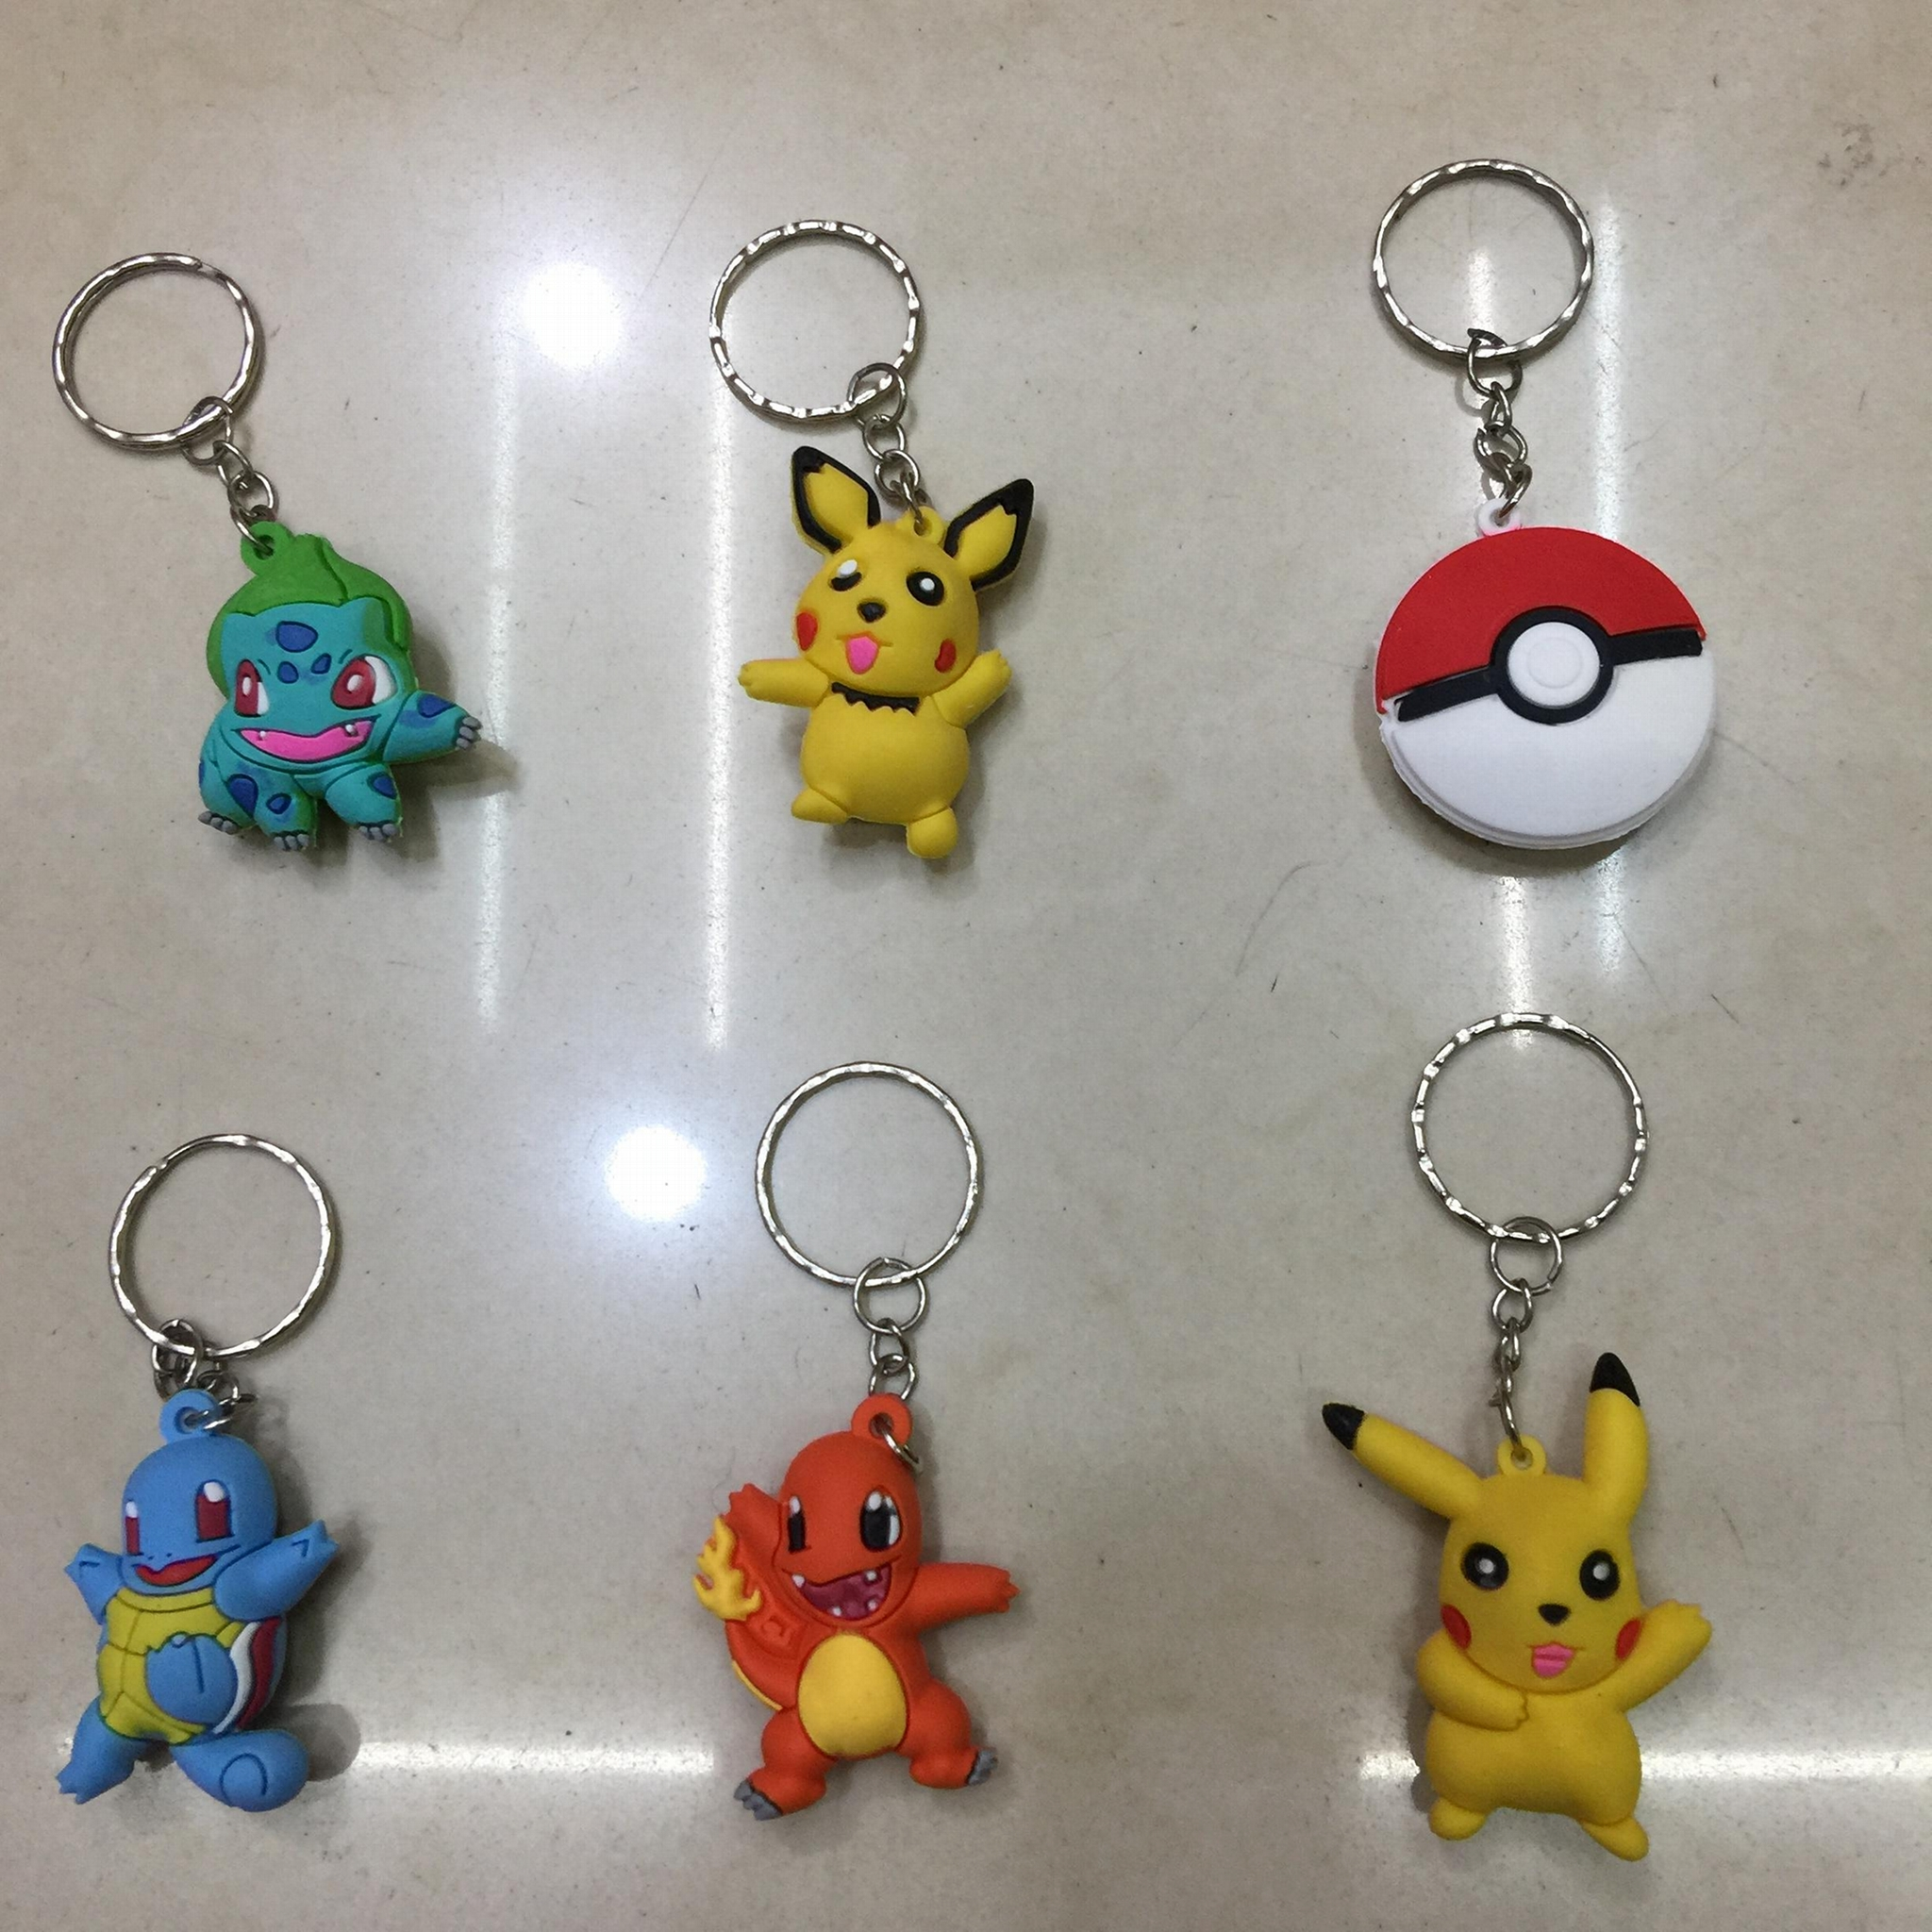 Cute Soft PVC Pokemon Toy Figure Dangler